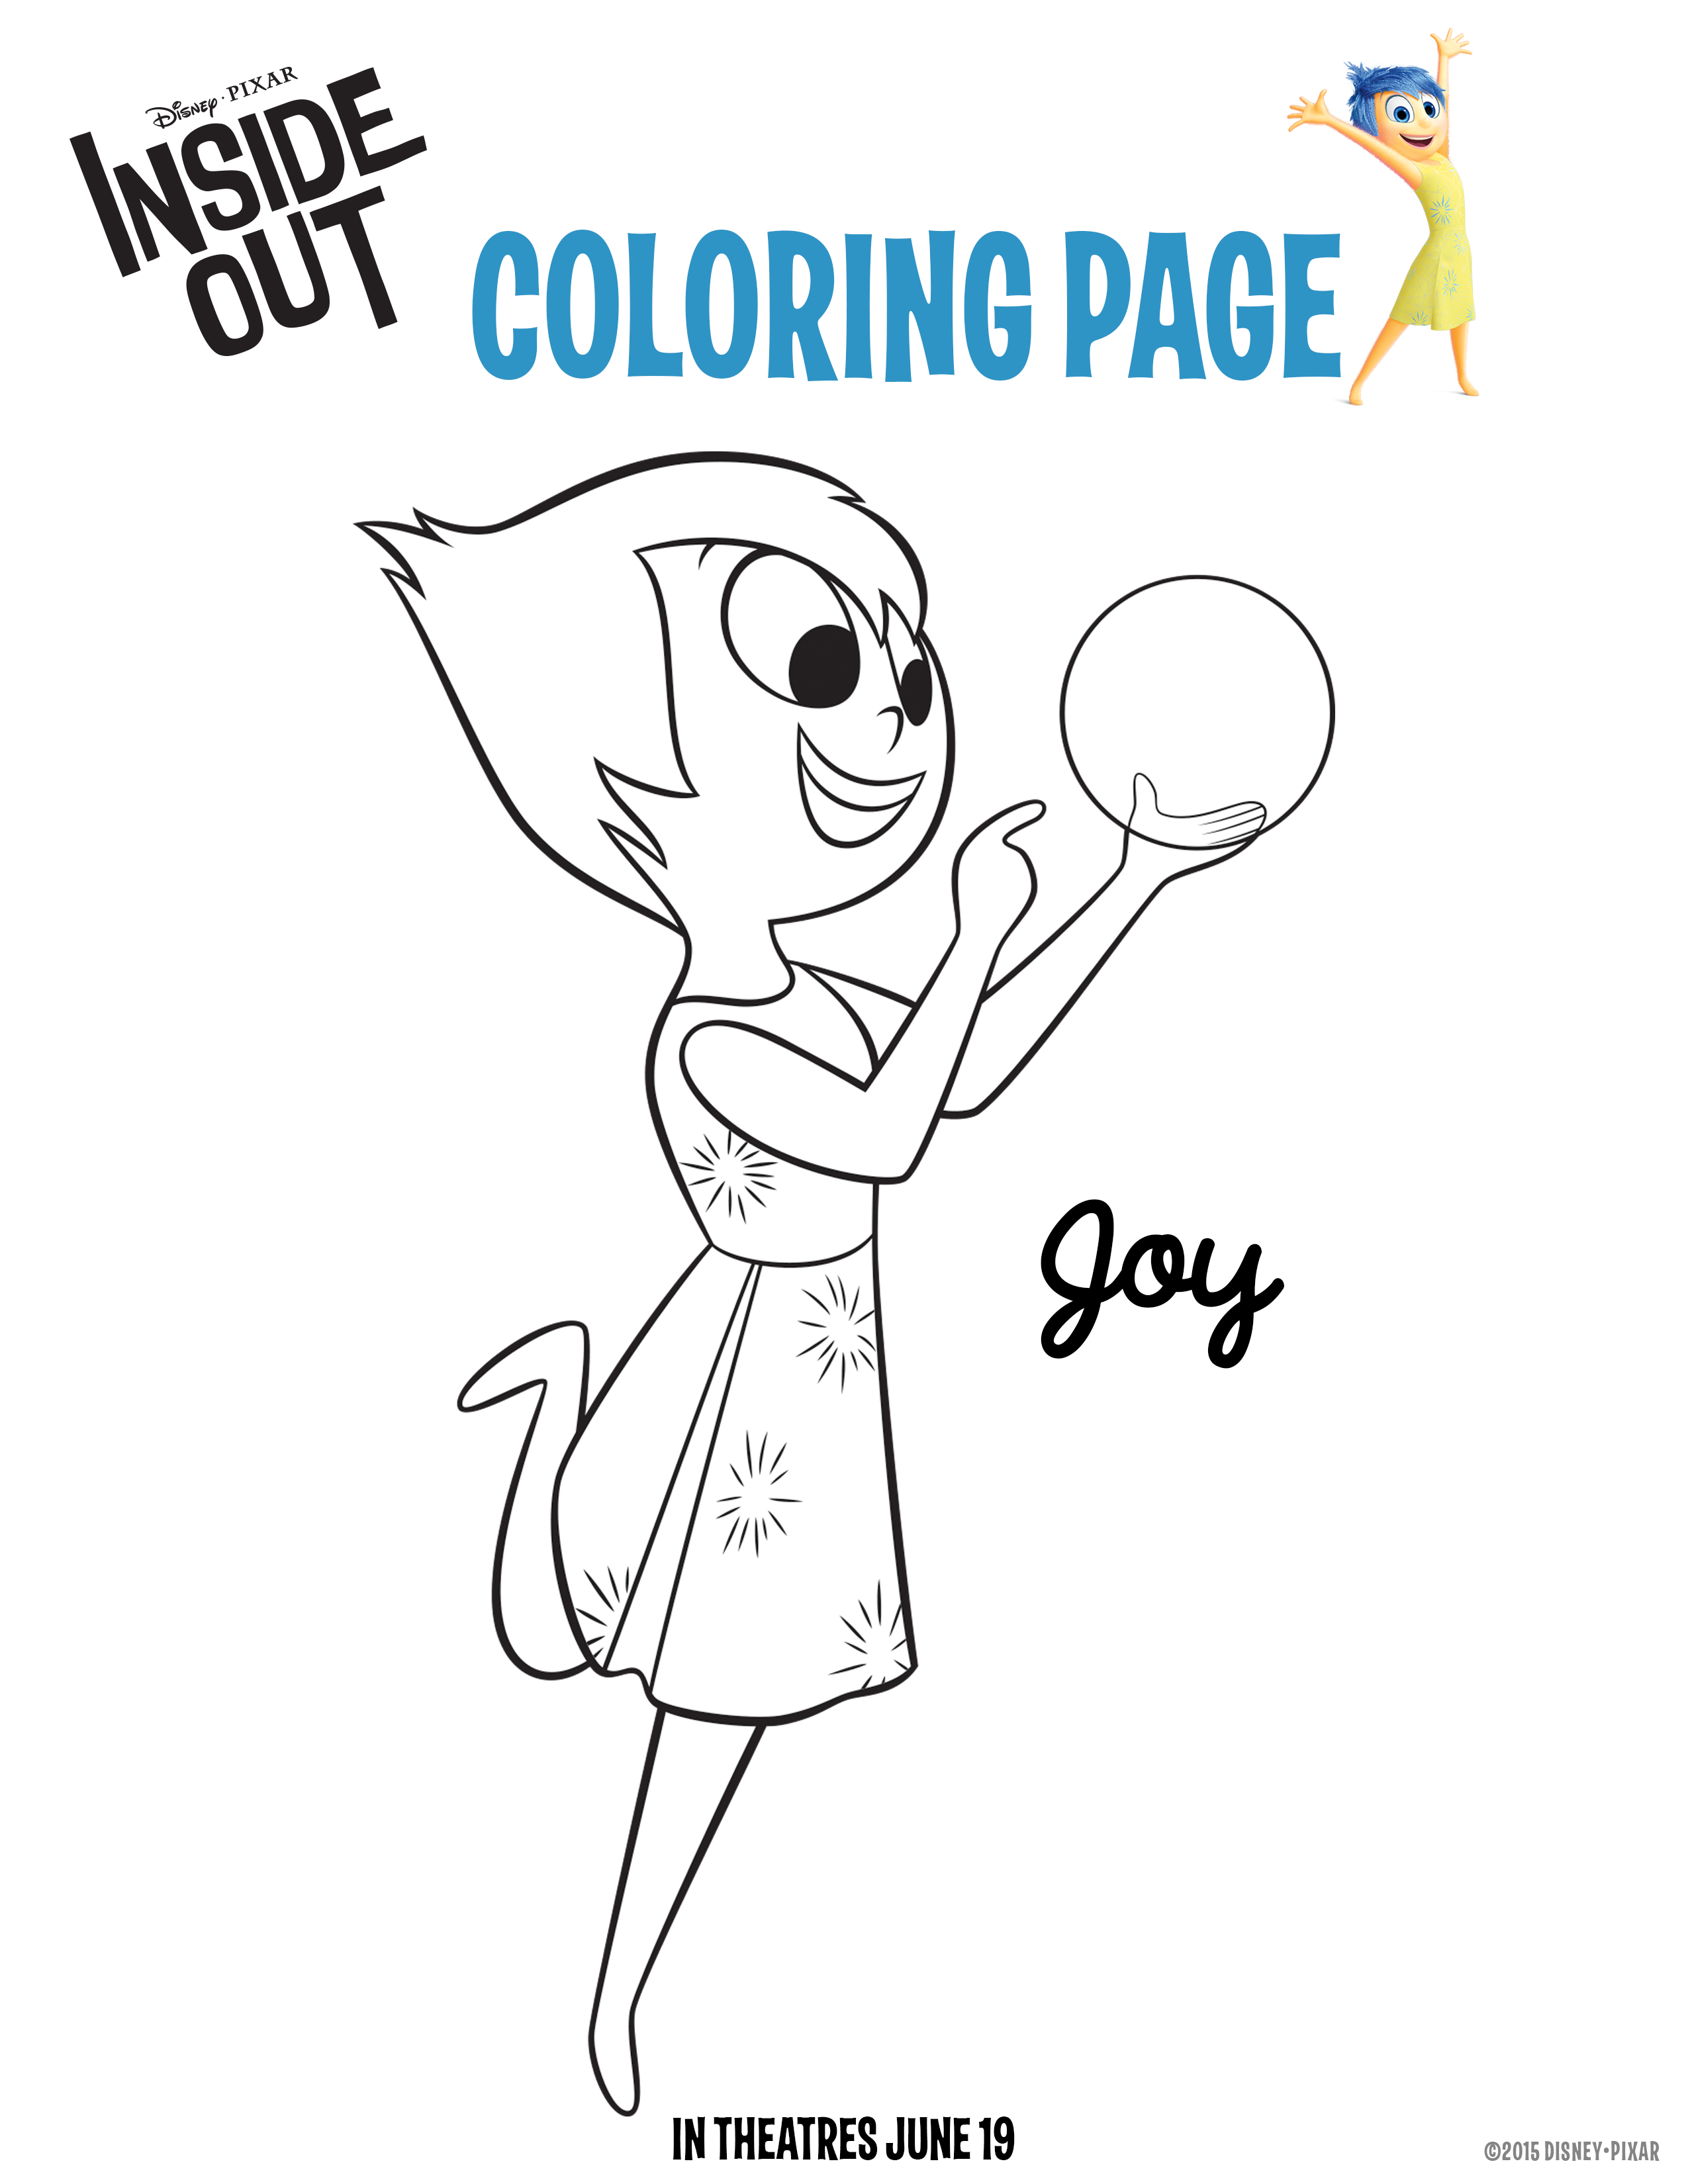 Brighten up your day with this joy coloring page inside out by